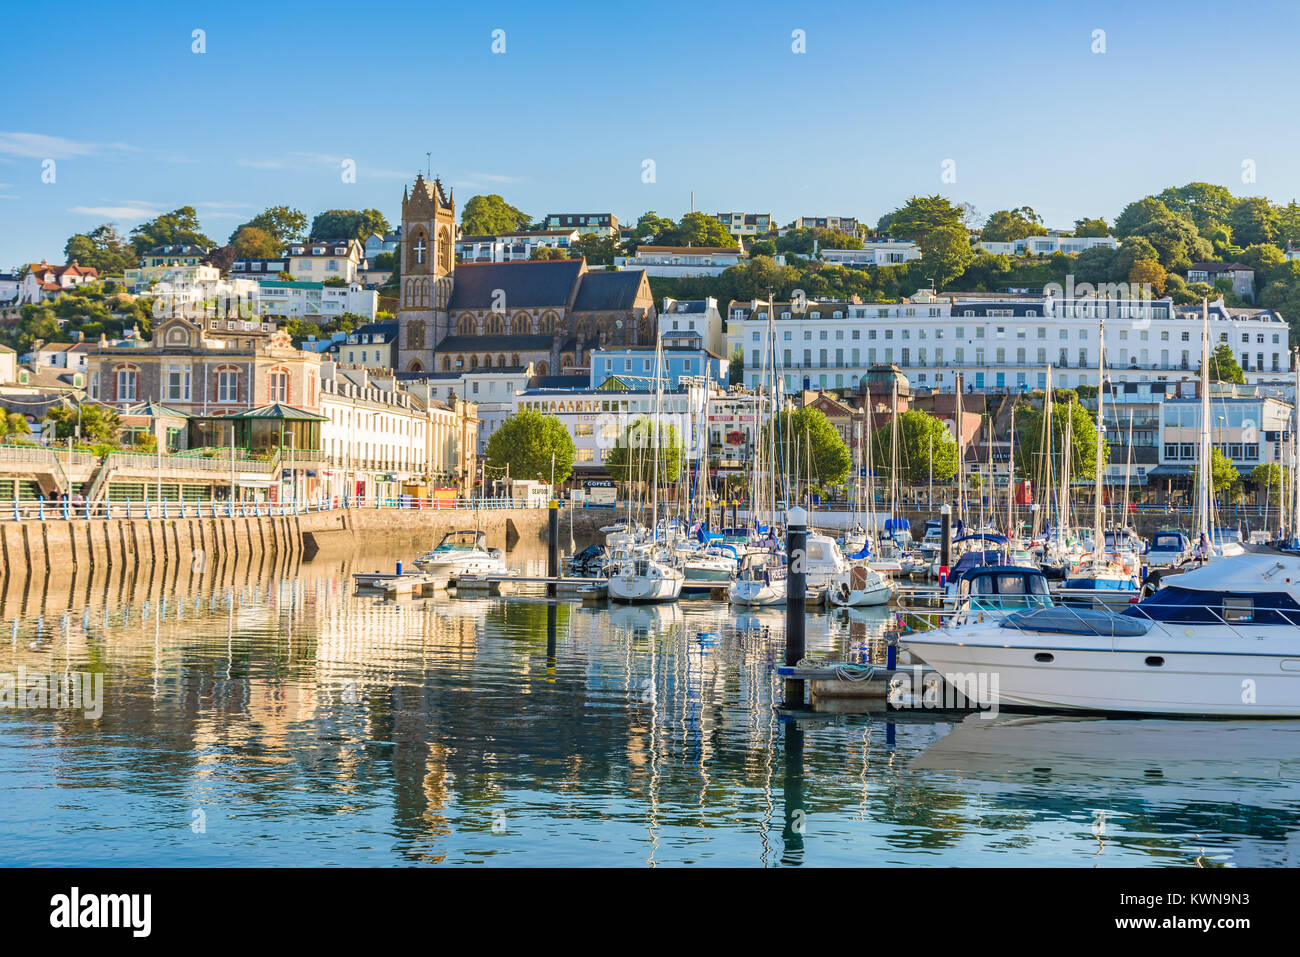 Morning view of Torquay from the Harbour, Devon, England. August 2017 - Stock Image